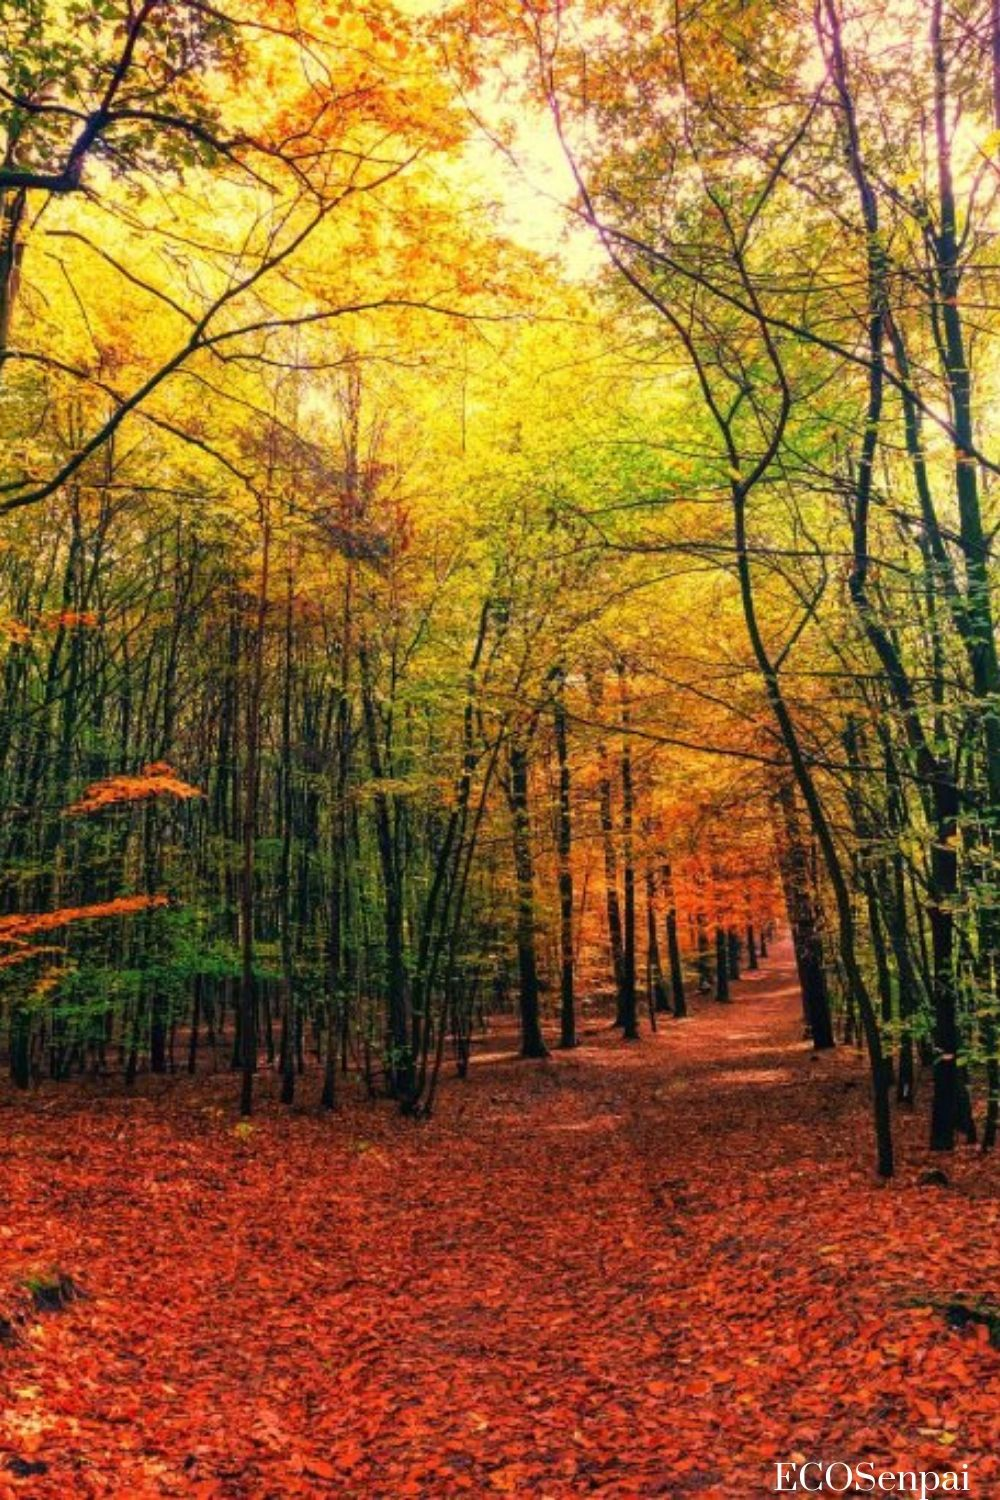 Nature Amazing Photo And Beautiful Scenery Awesome Autumn Color Wild Forest Landsca Best Nature Wallpapers Nature Backgrounds Iphone Nature Photography Trees